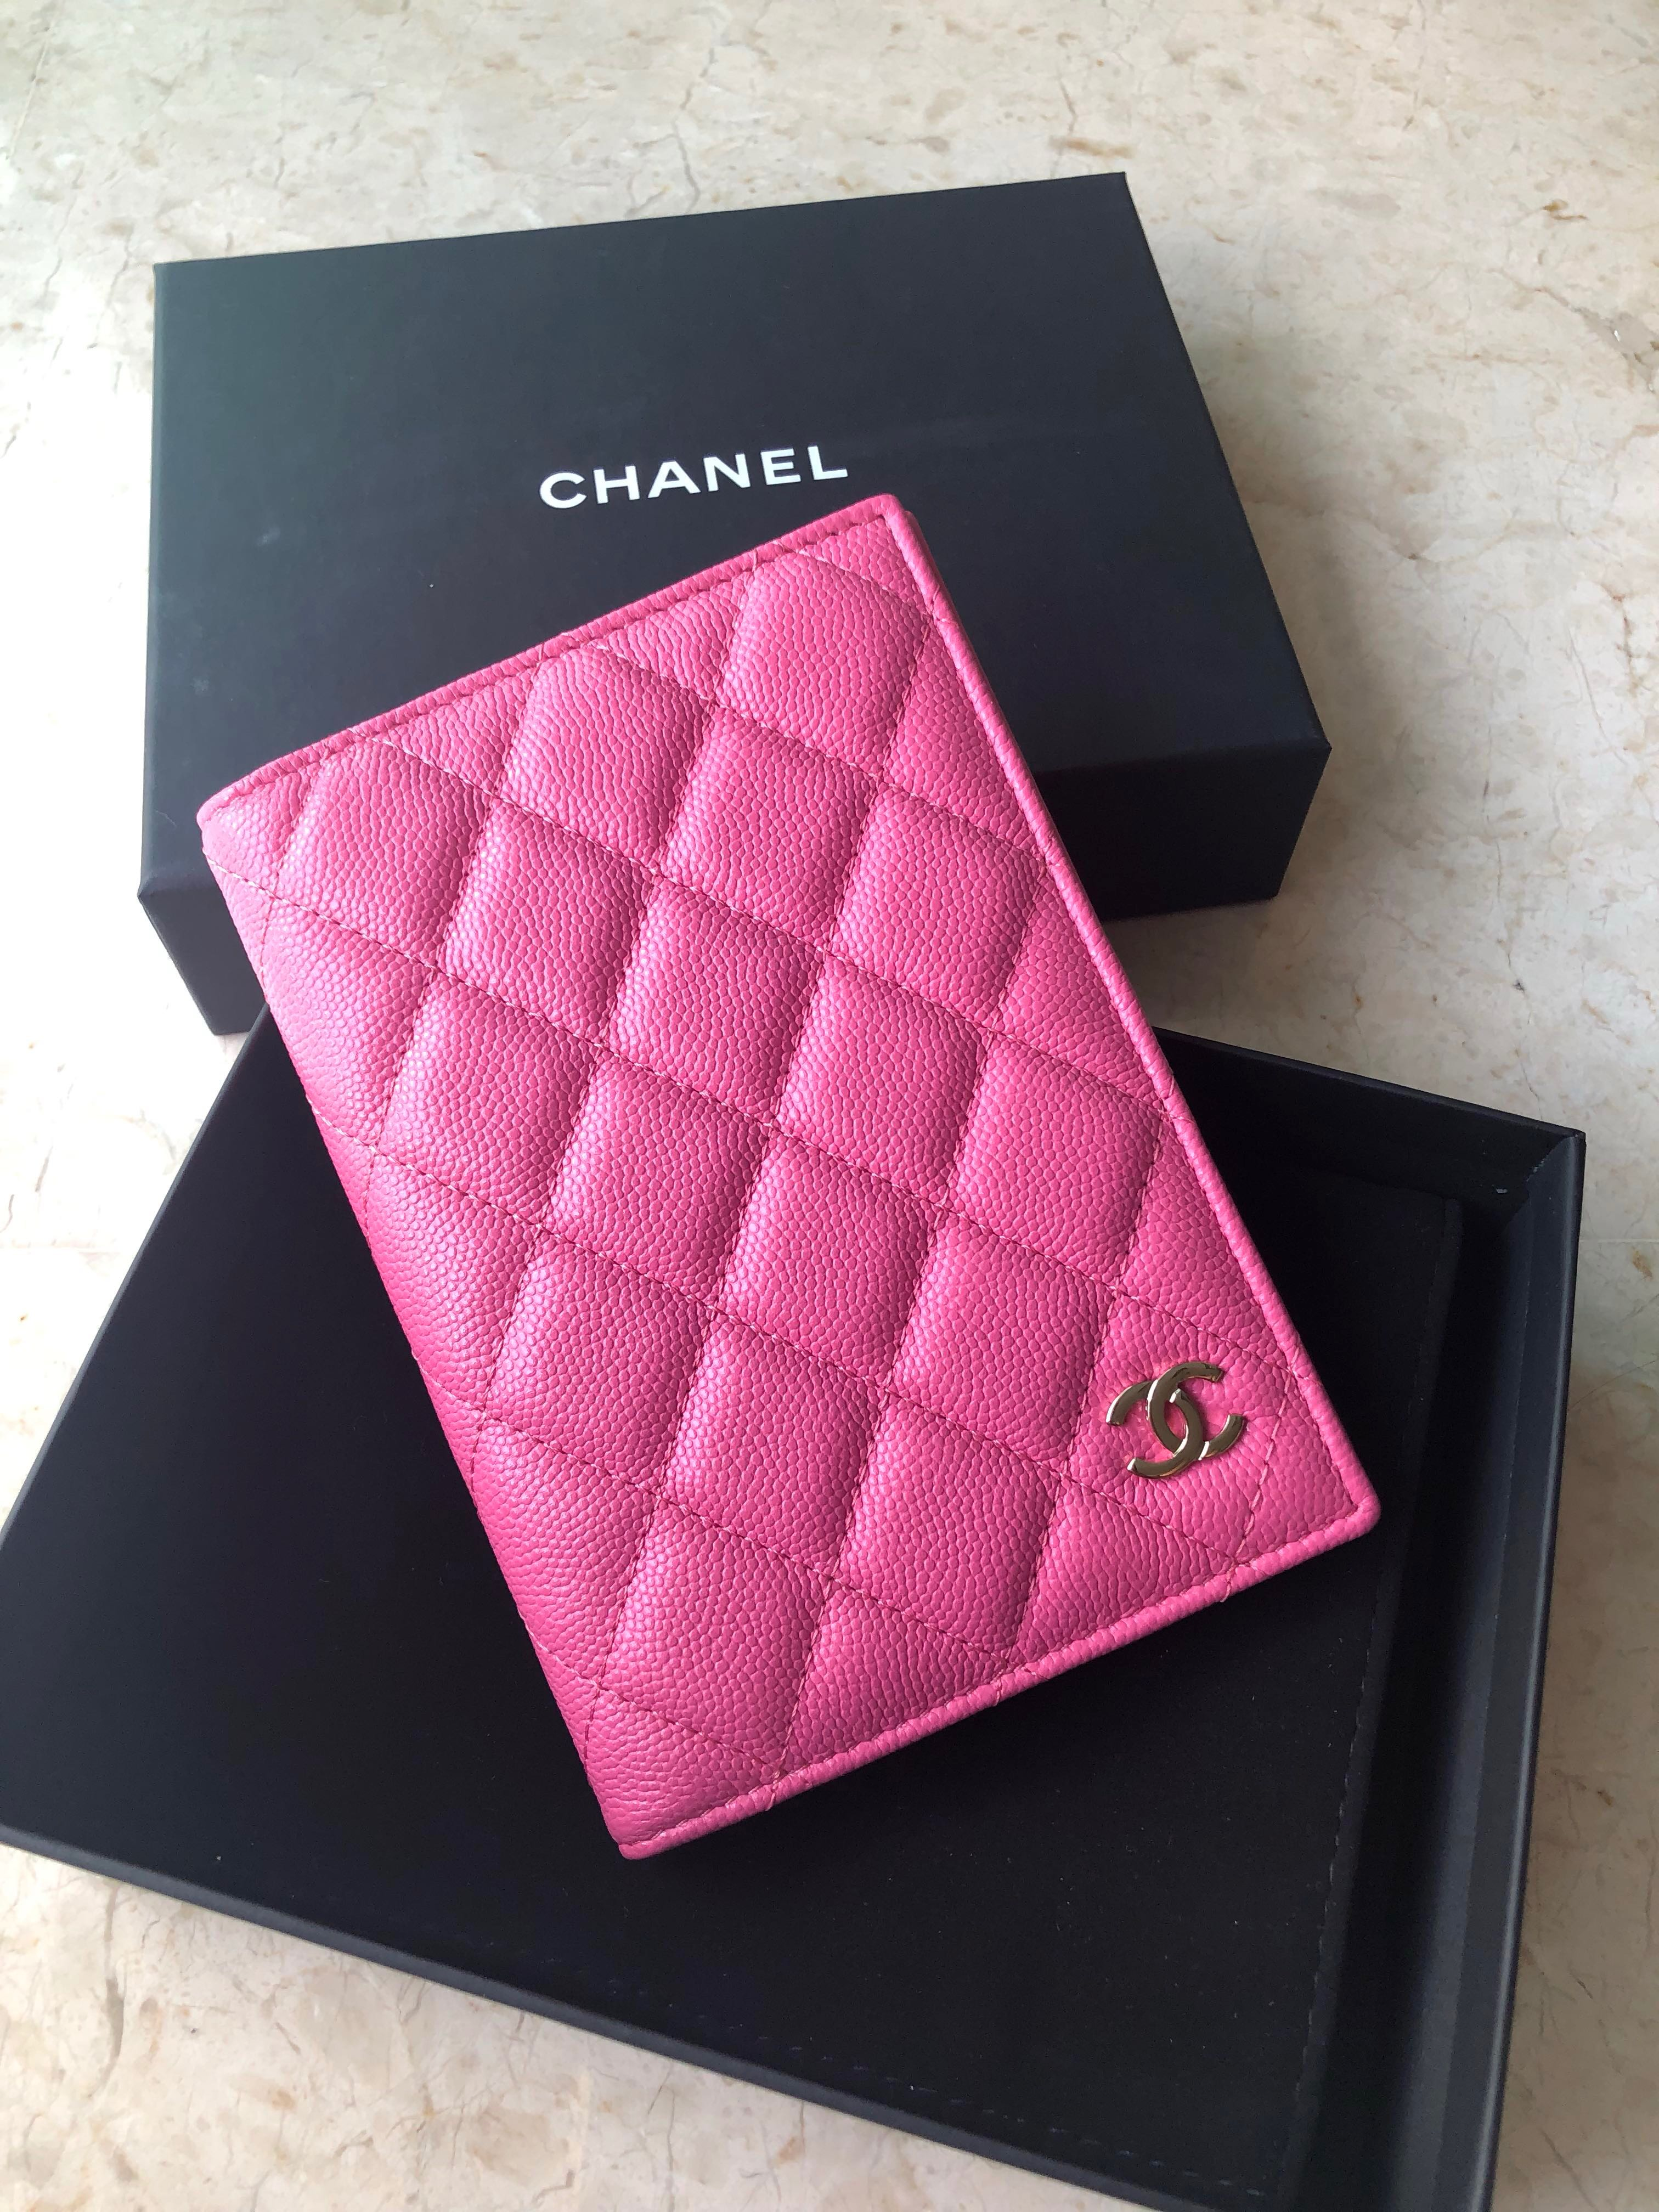 c51c31ce7d8f Authentic Chanel Pink Caviar Passport holder, Luxury, Bags & Wallets,  Handbags on Carousell